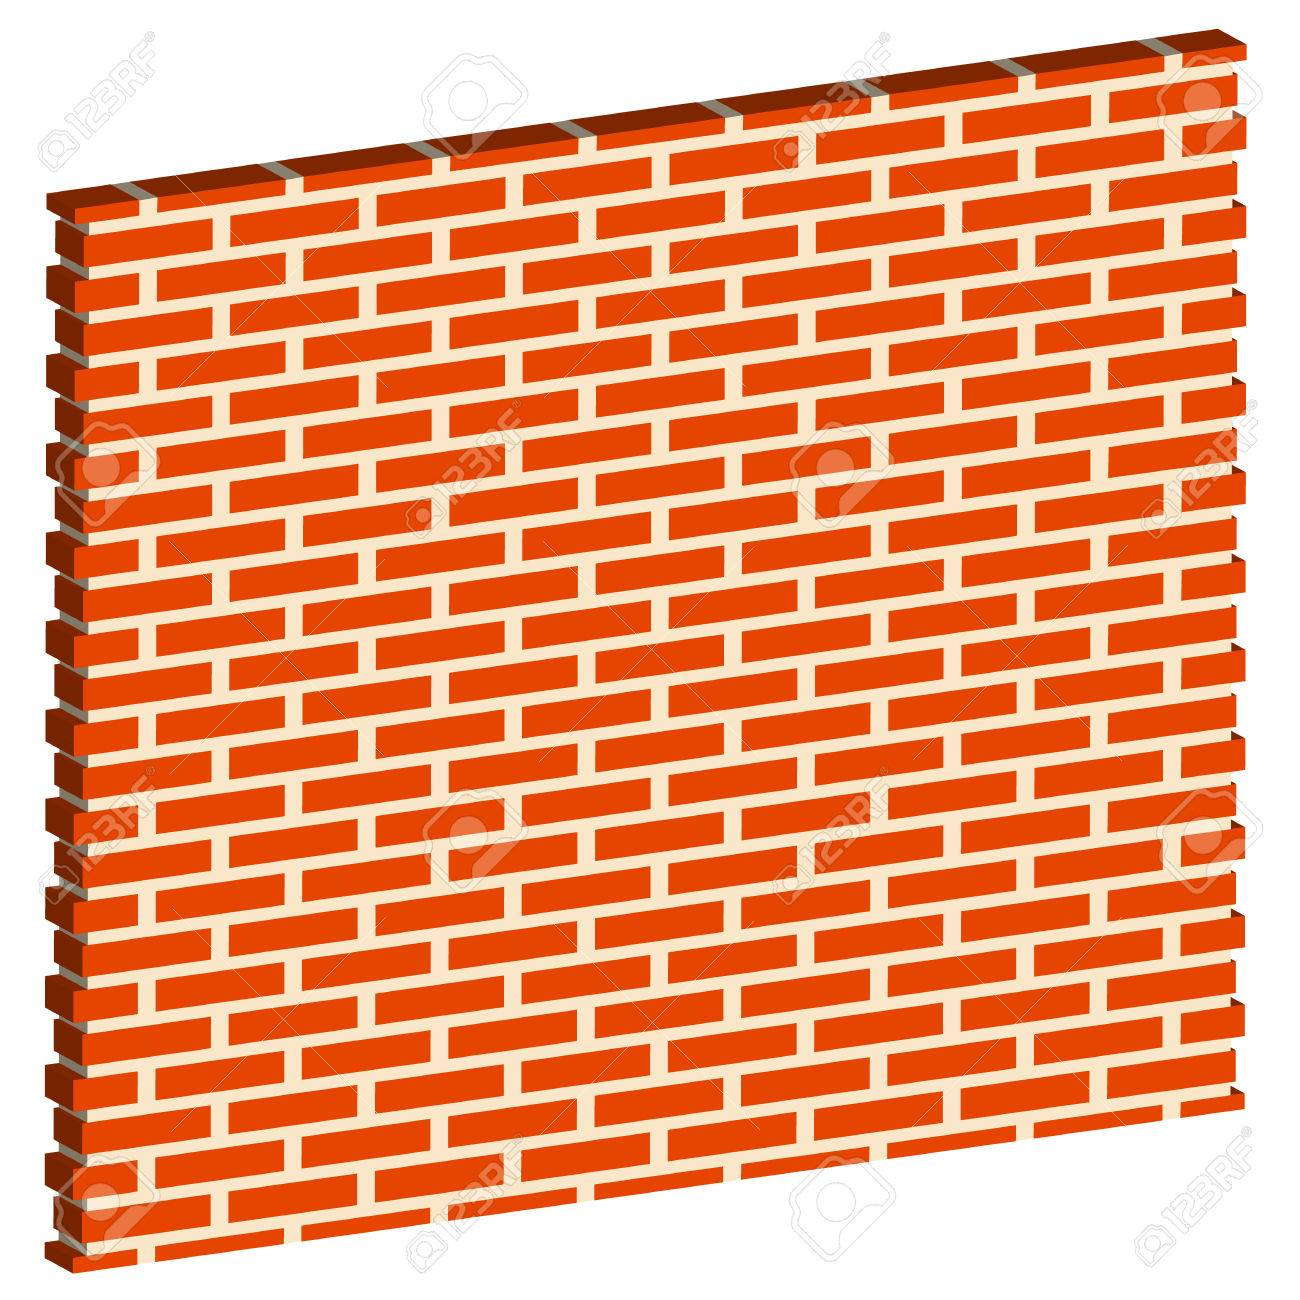 3D Spatial Brick Wall Brickwork With Regular Pattern Isolated On White Editable Vector